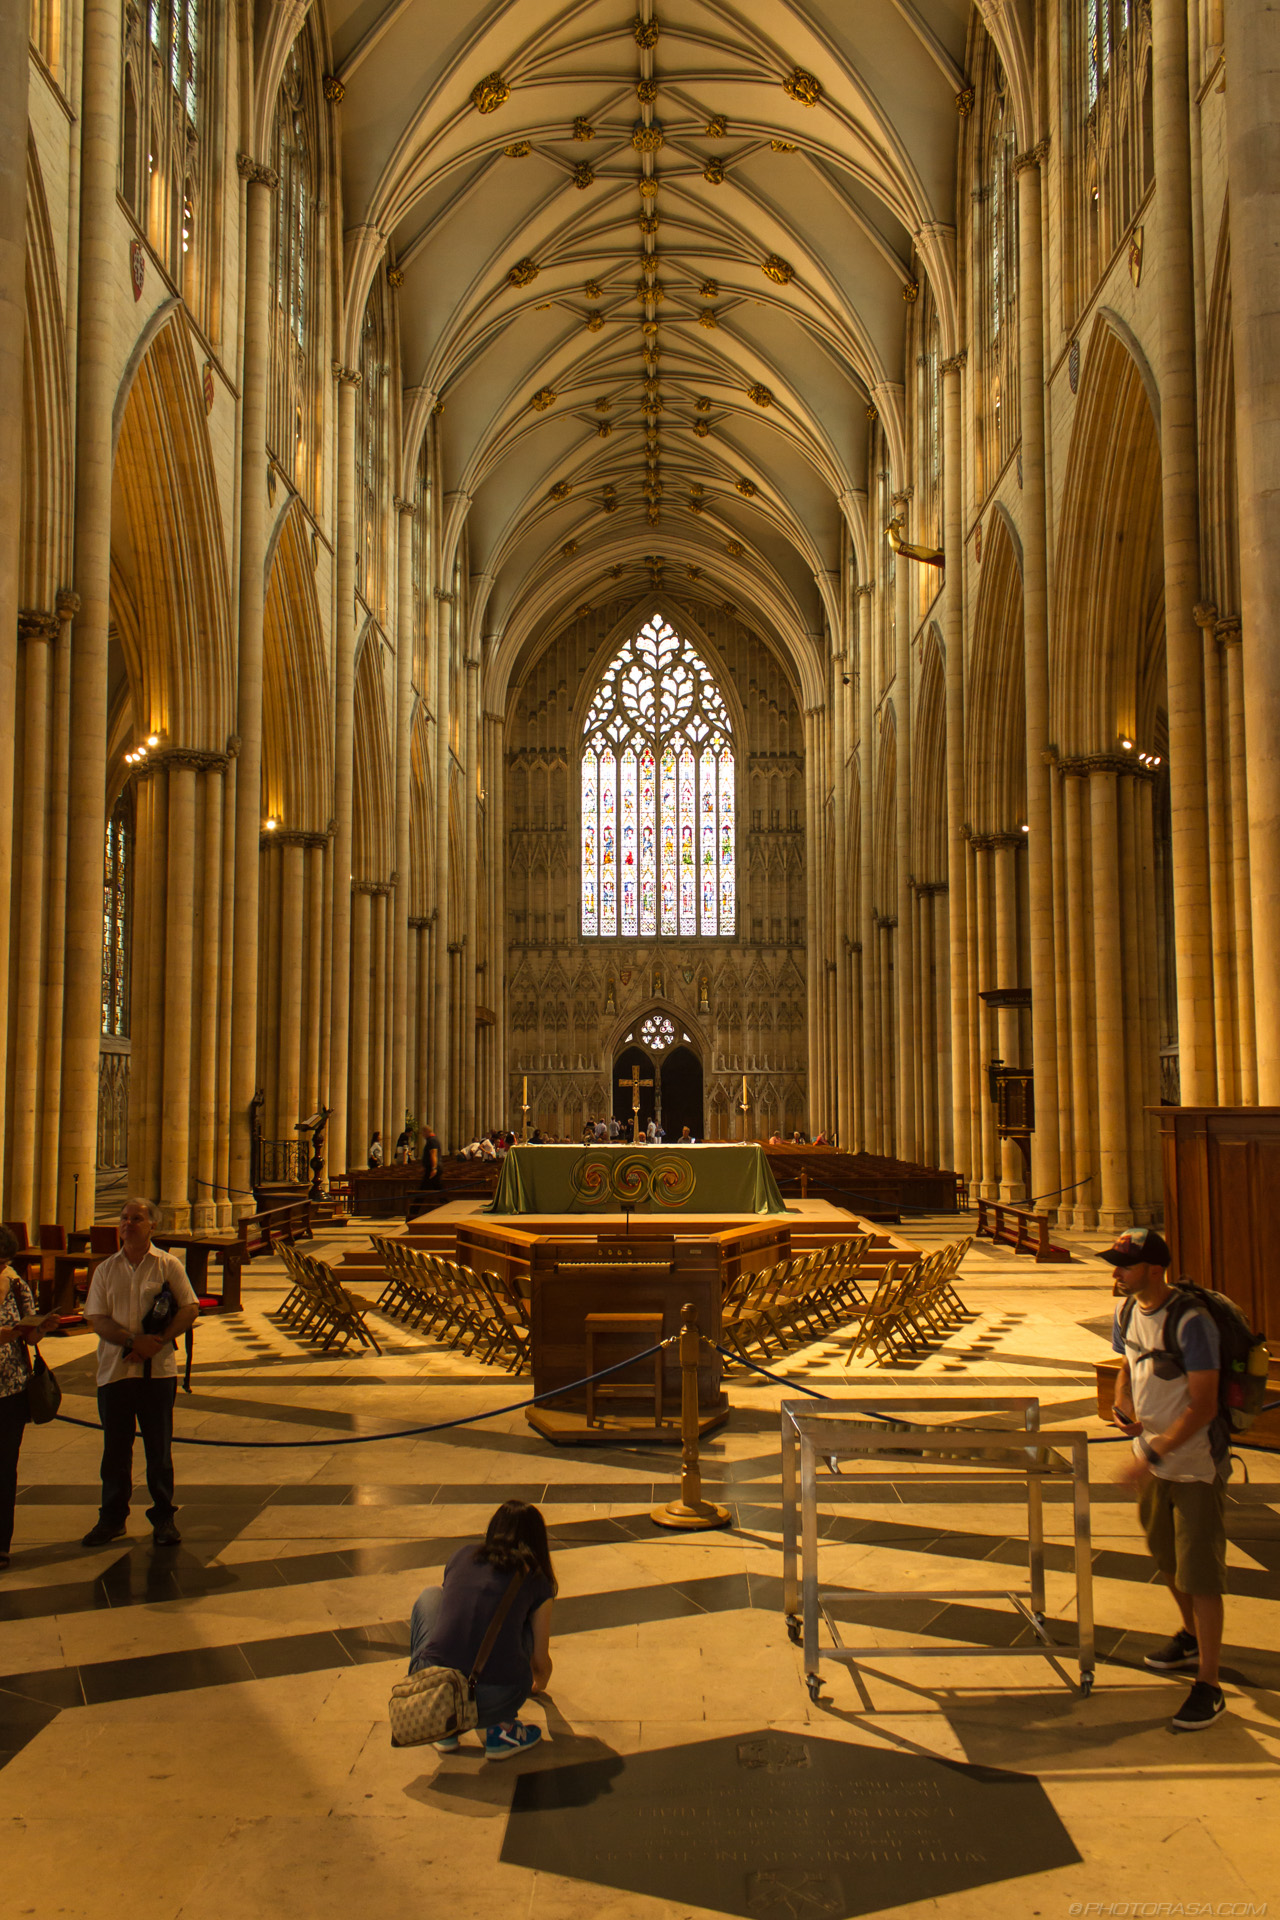 http://photorasa.com/yorkminster-cathedral/the-nave-from-the-east/